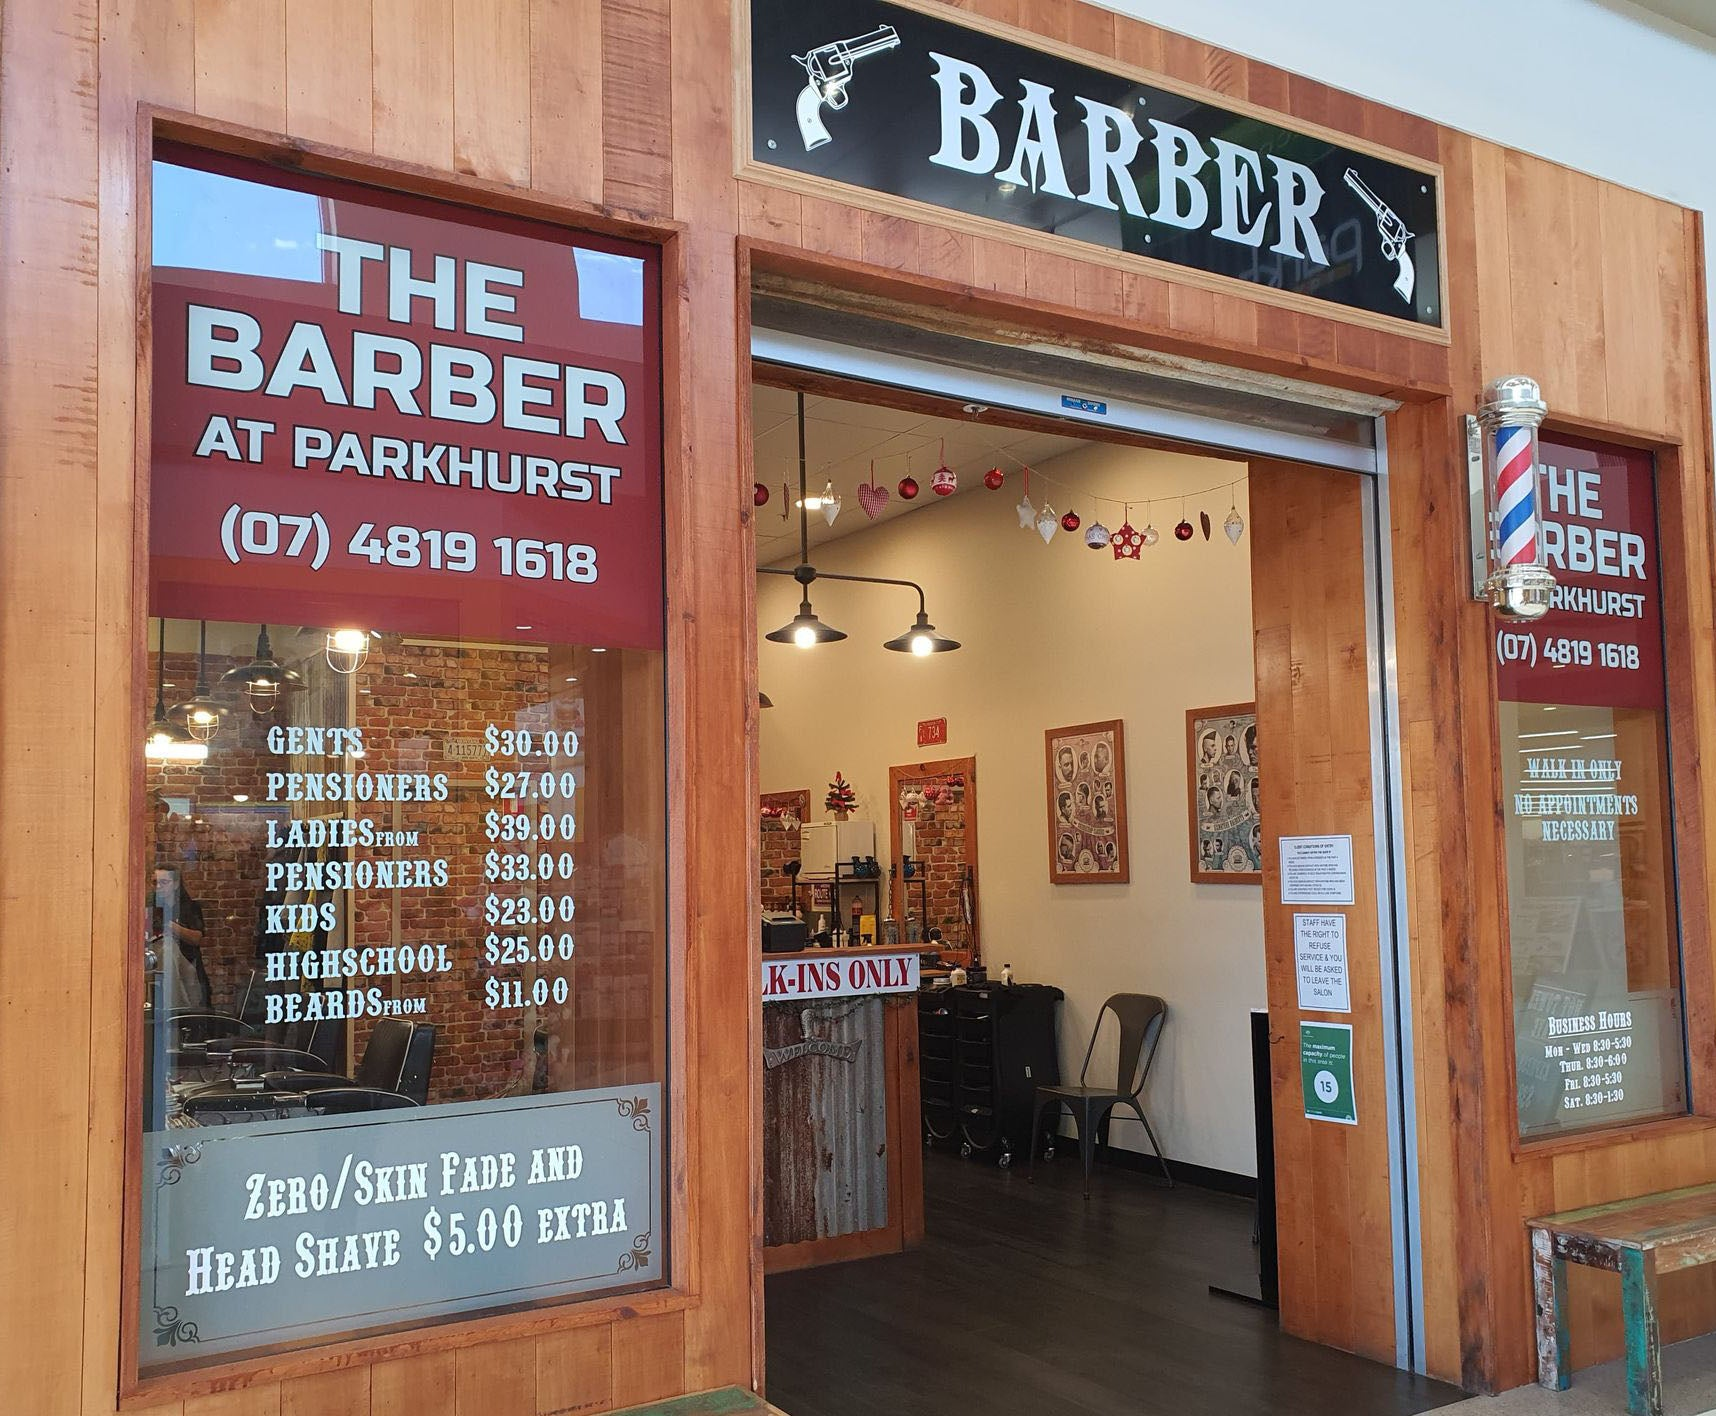 The Barber at Parkhurst